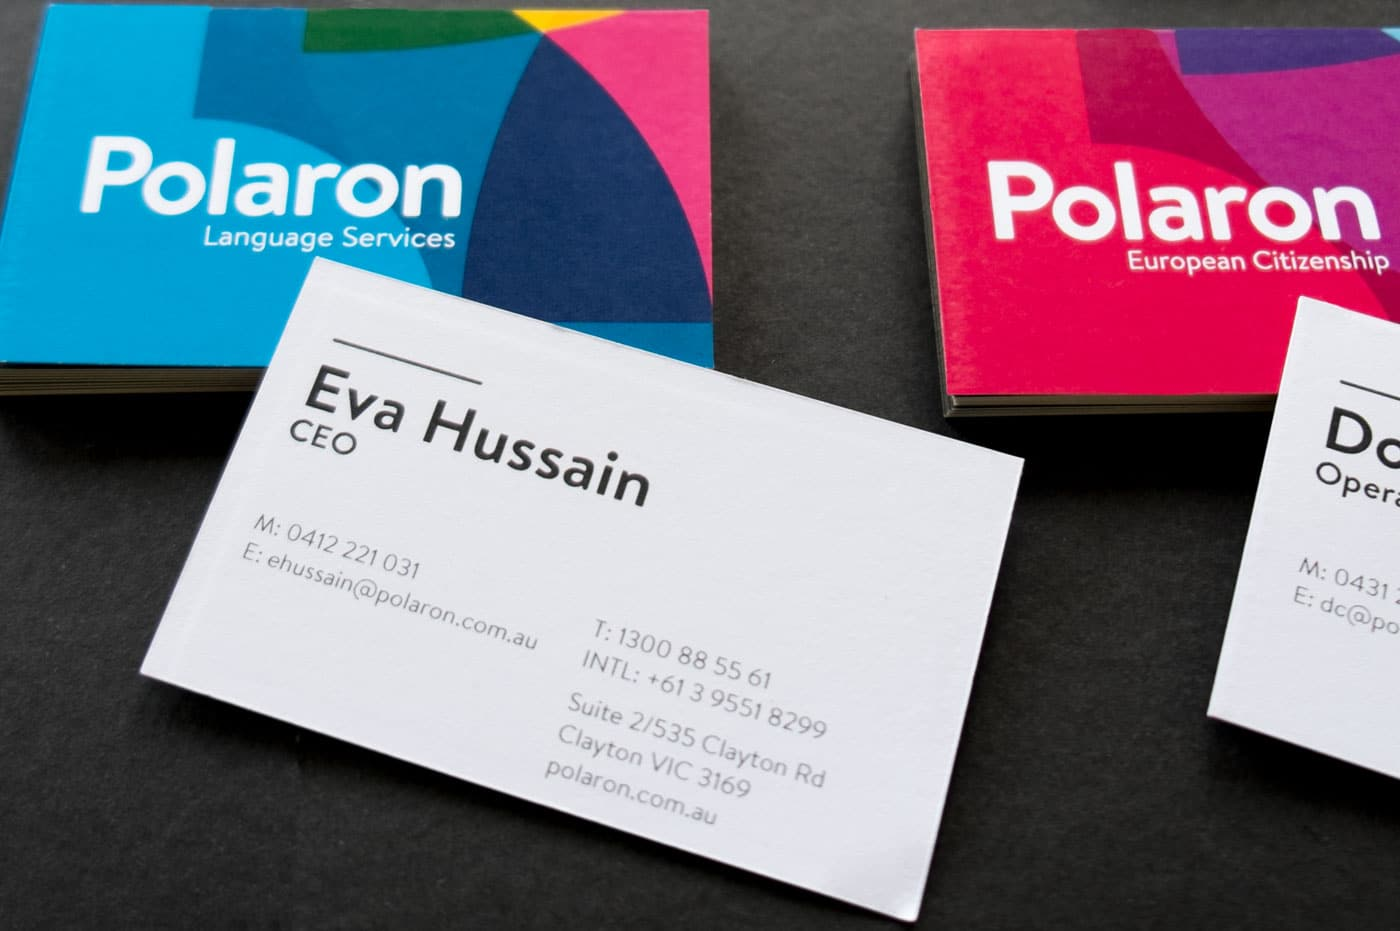 Polaron business cards